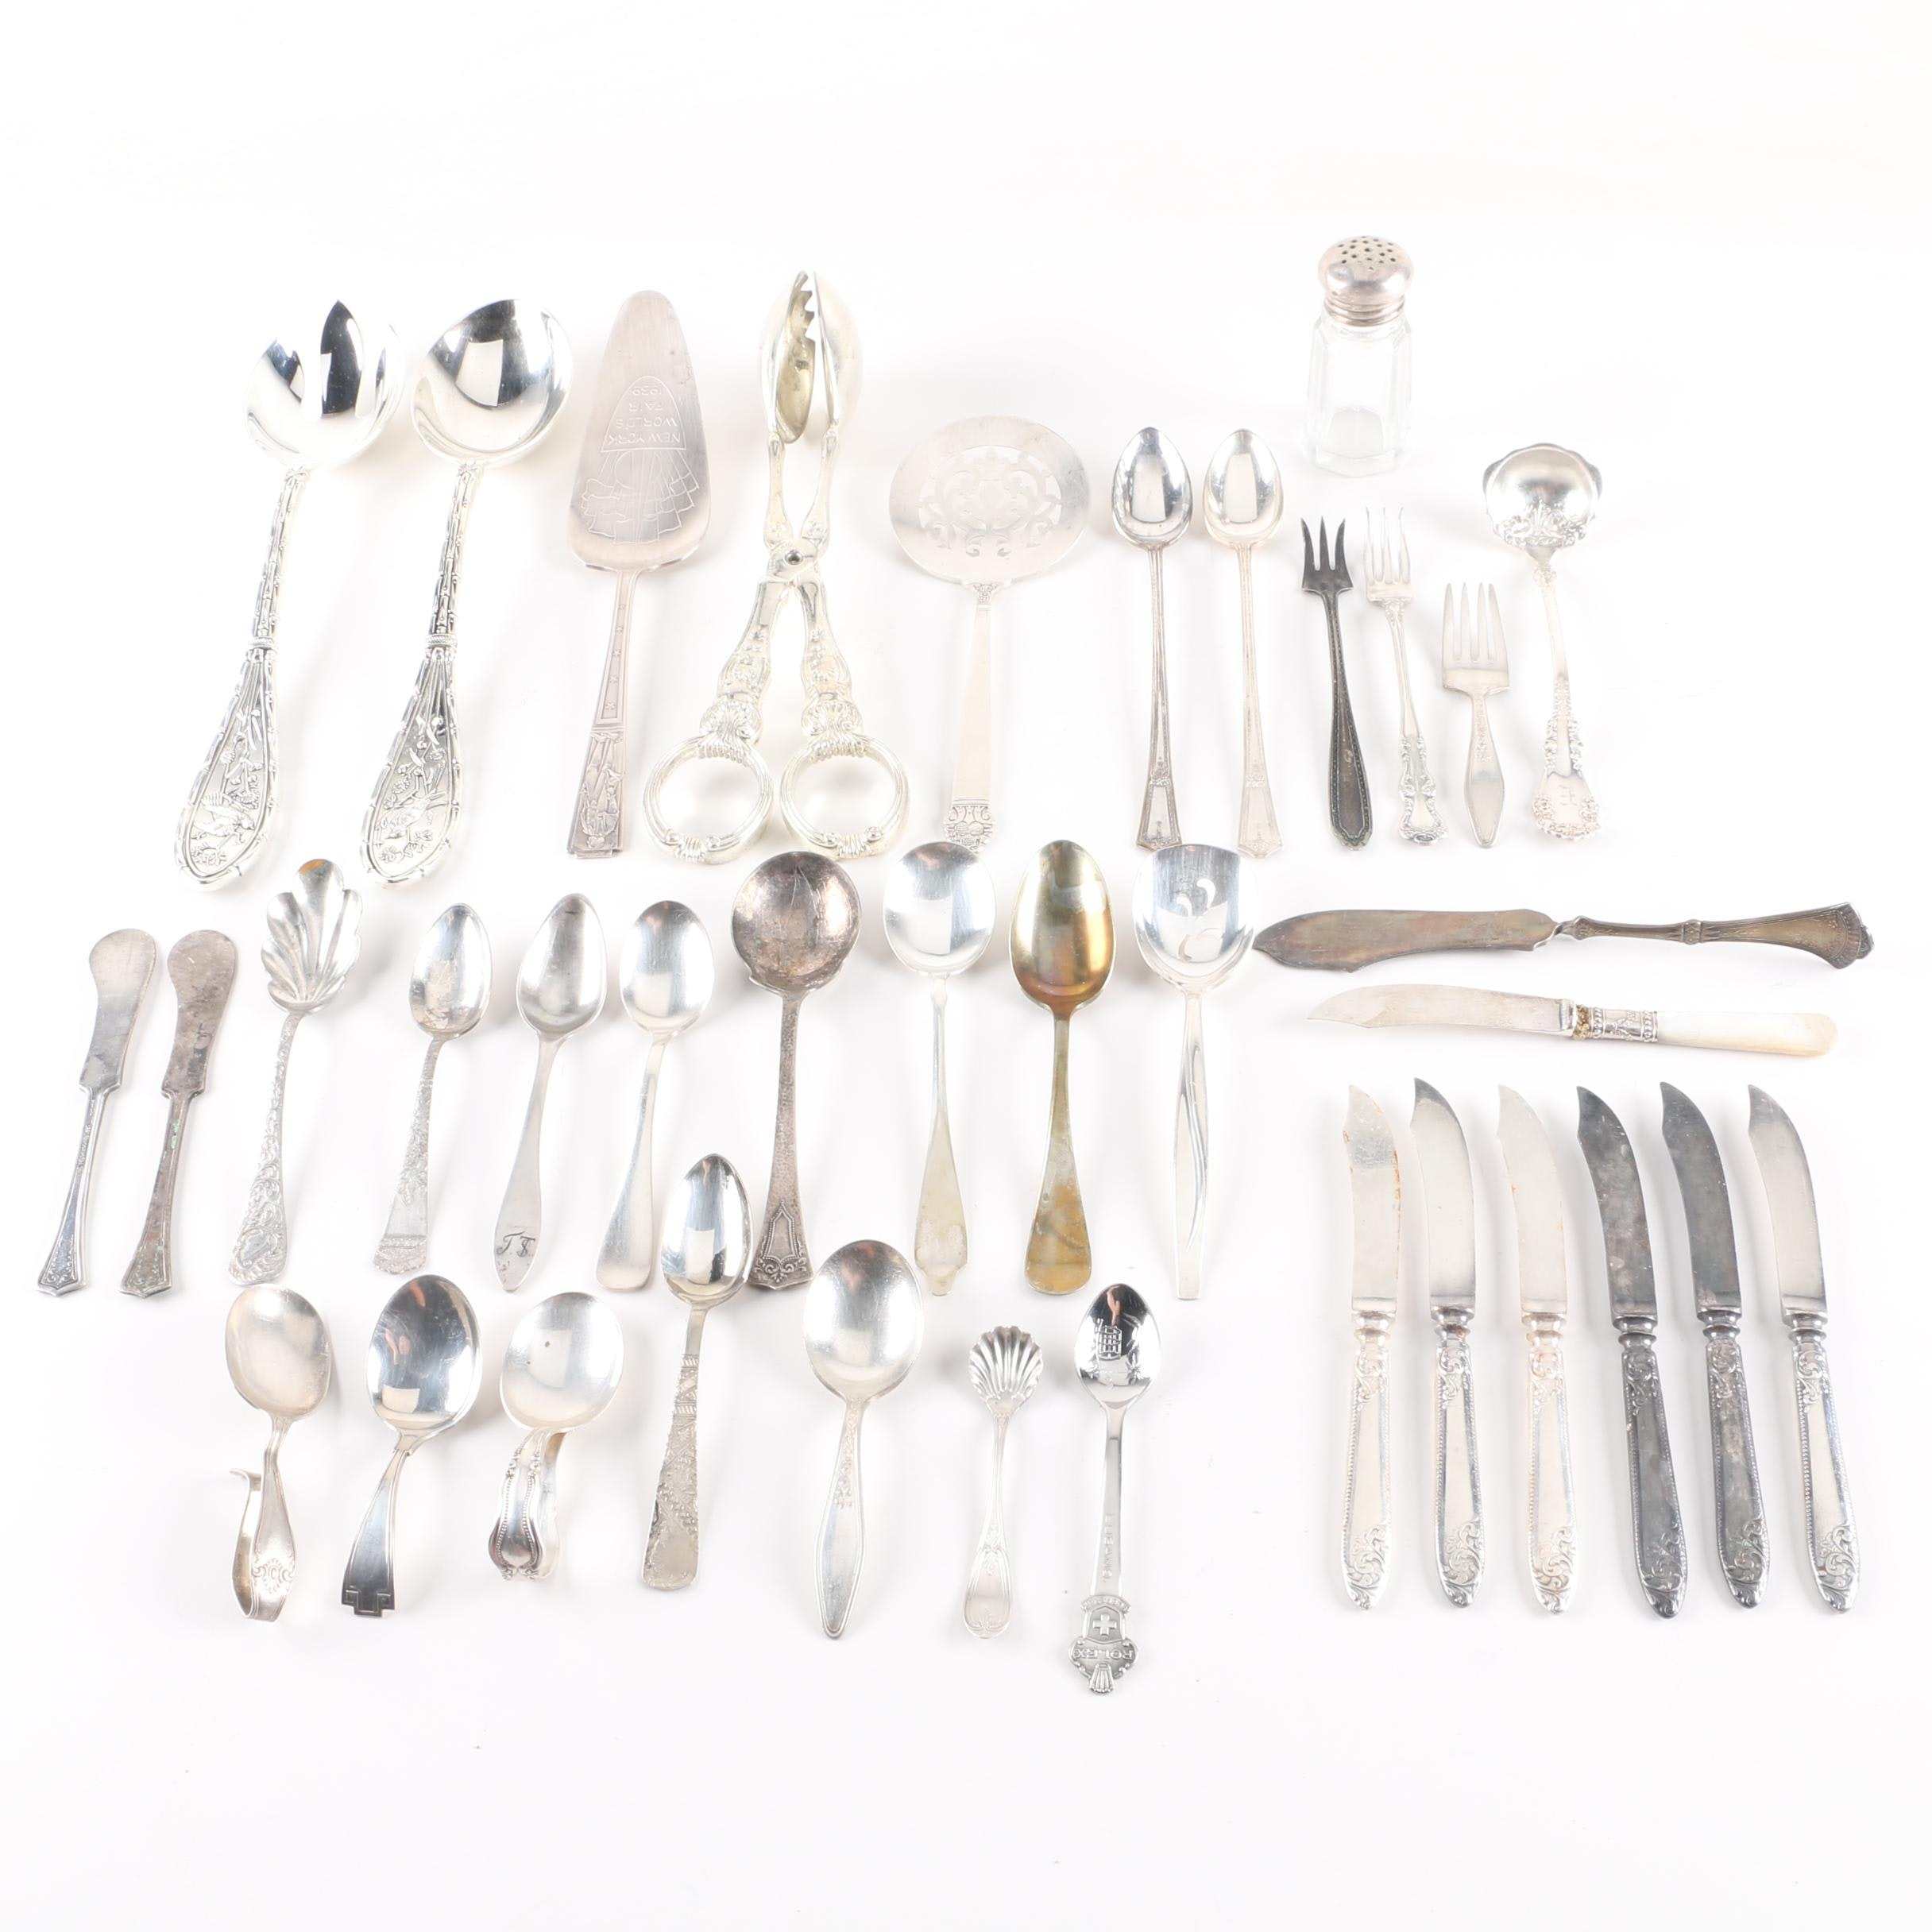 Silver Plate Flatware and Serving Utensils Featuring Godinger Tongs